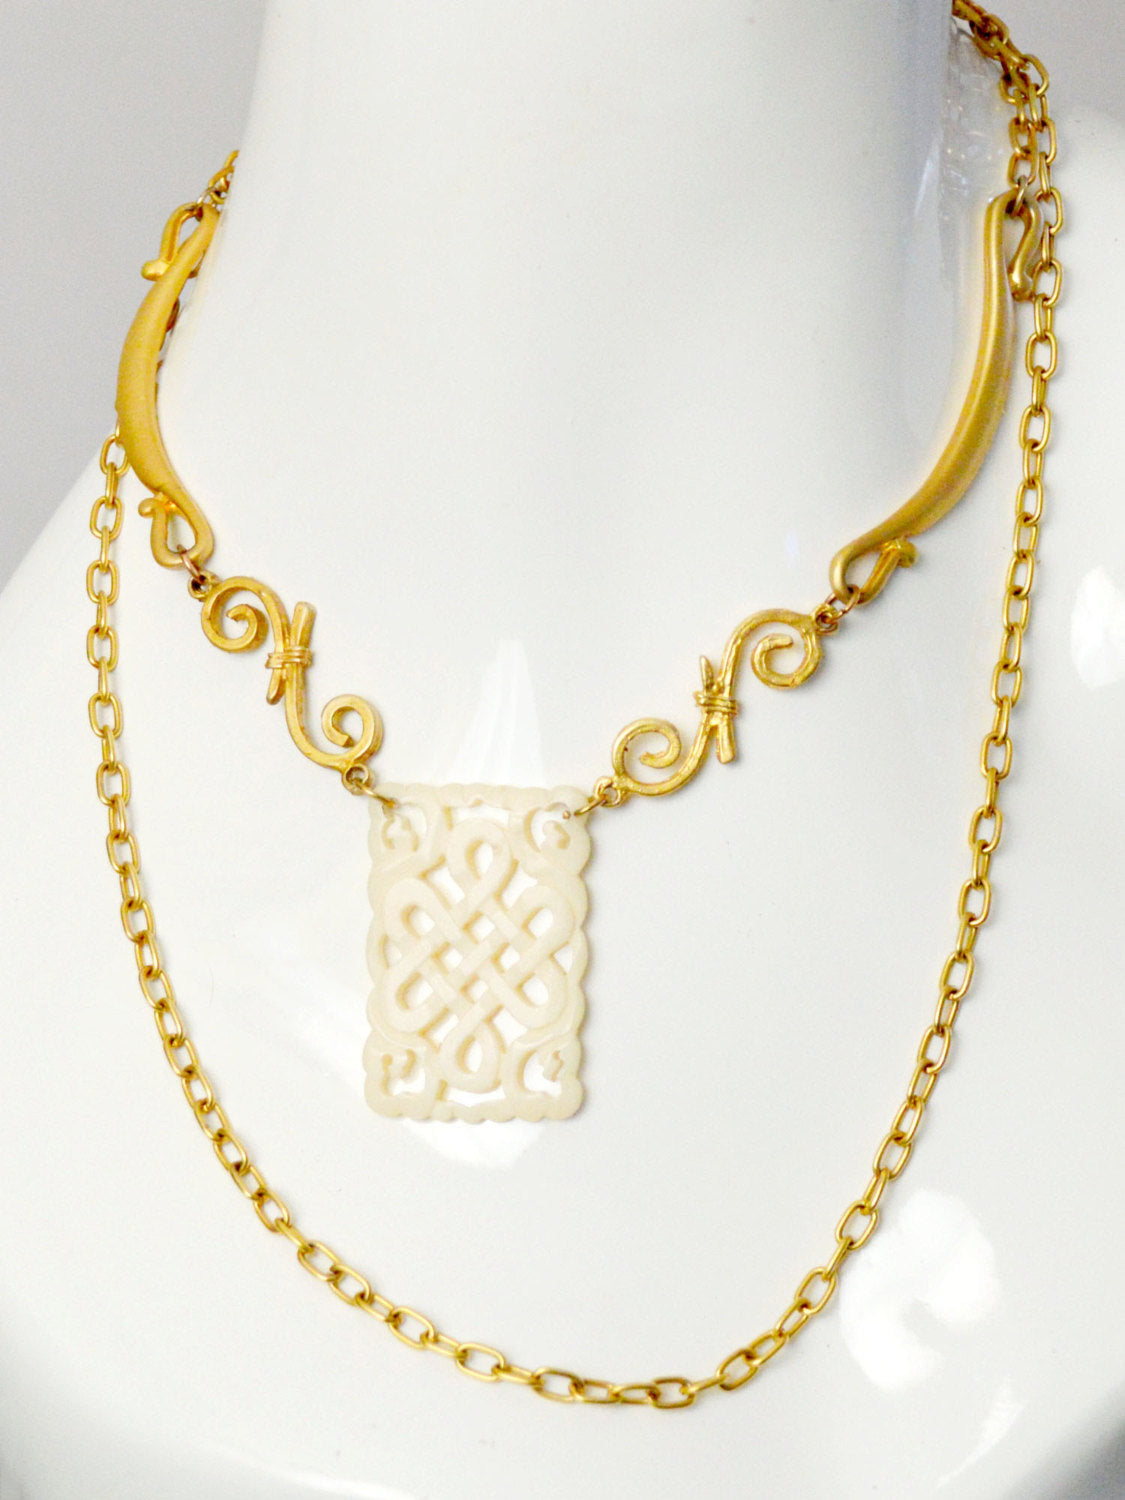 simple gold chain and spirals with bone charm wedding necklace